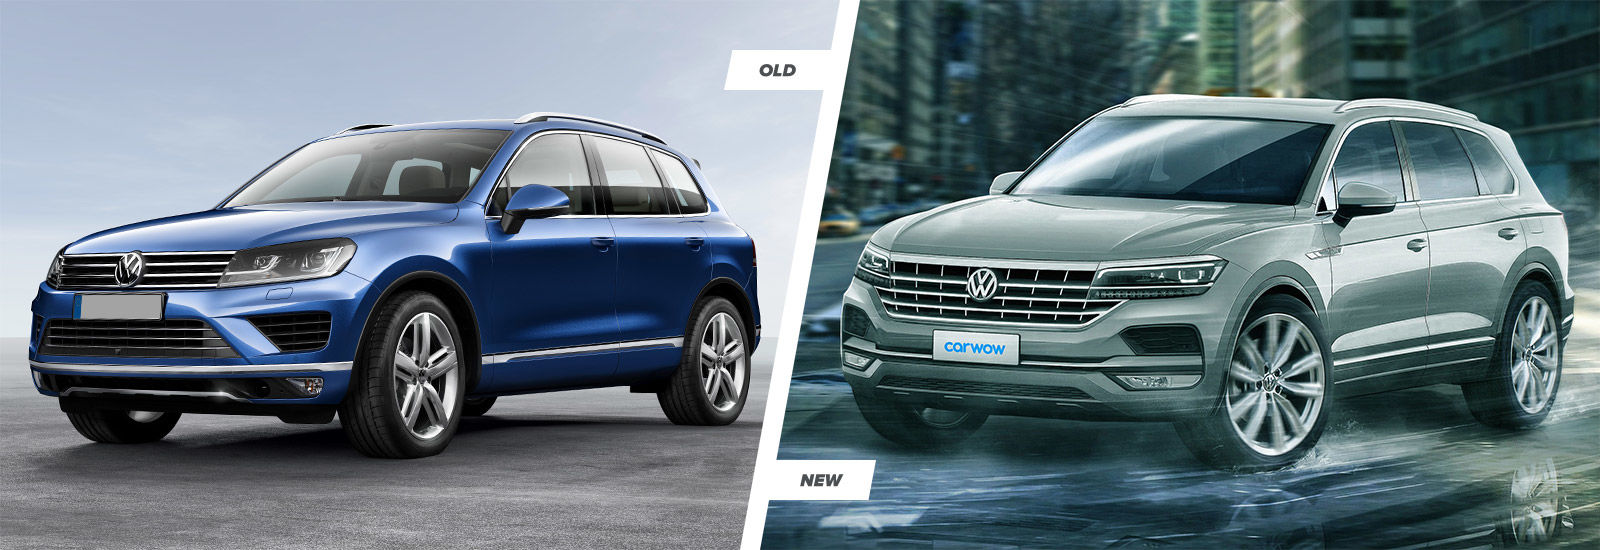 2017 VW Touareg 4x4 SUV price specs release date | carwow